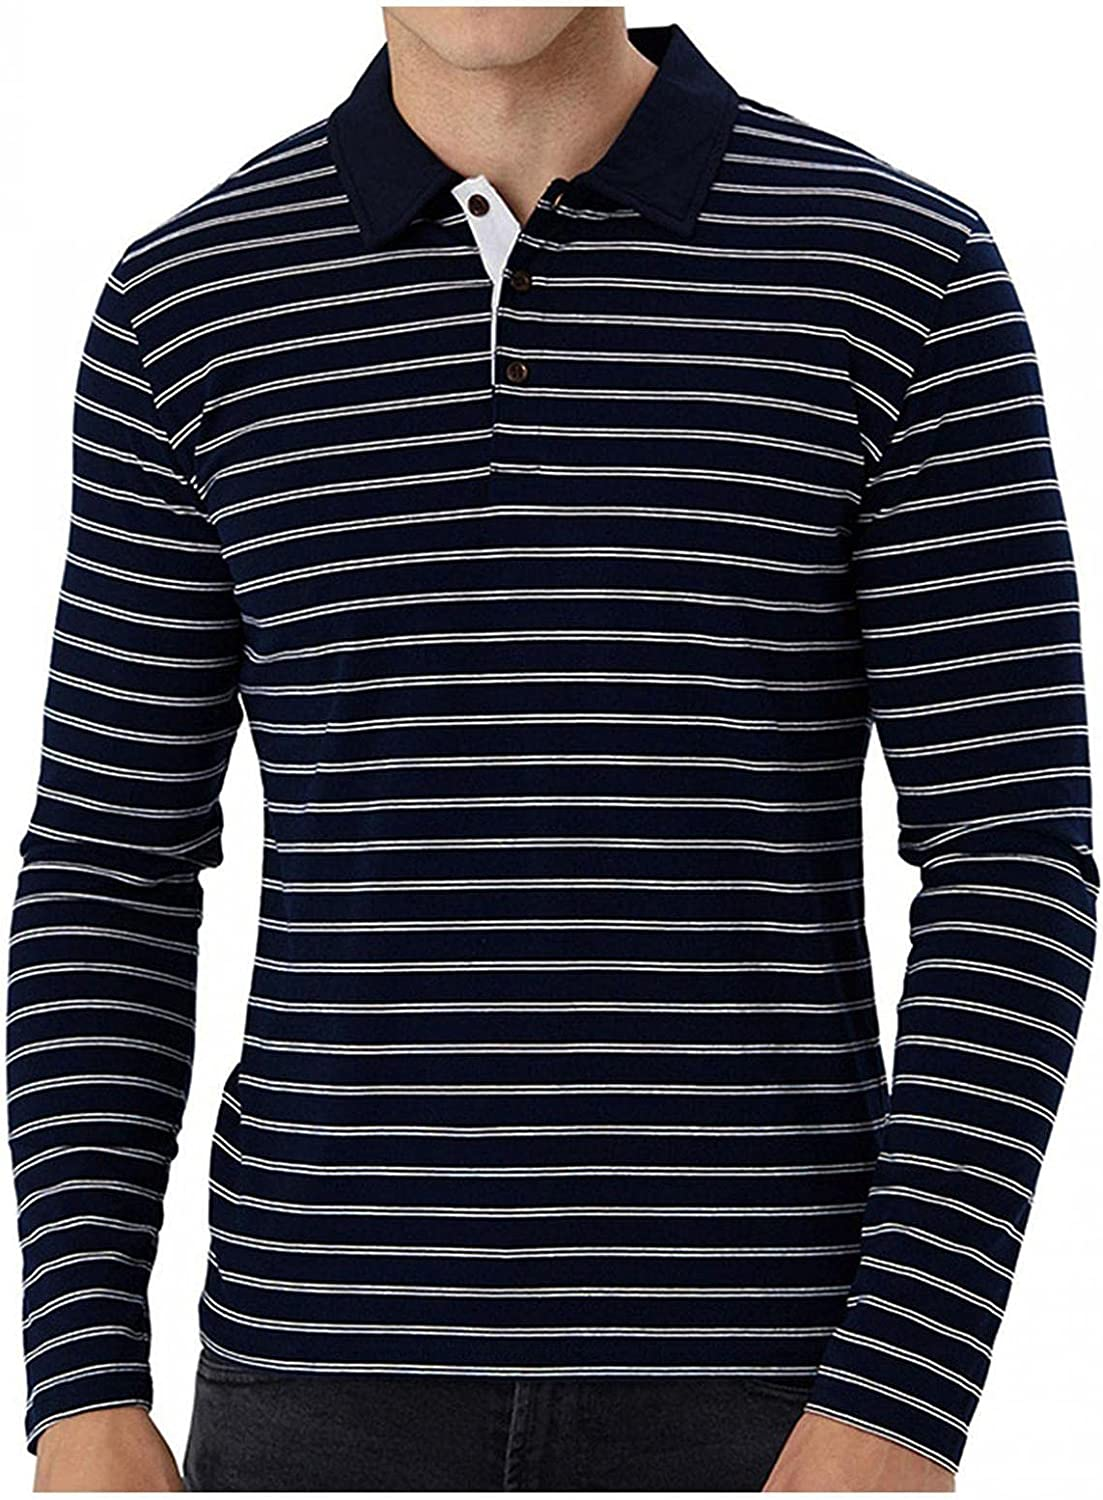 Men Polo Shirts Long Sleeve Lapel Button Top Soft Comfy Cotton Blouse Classic Striped Pullover T-Shirt Casual Baggy Tee